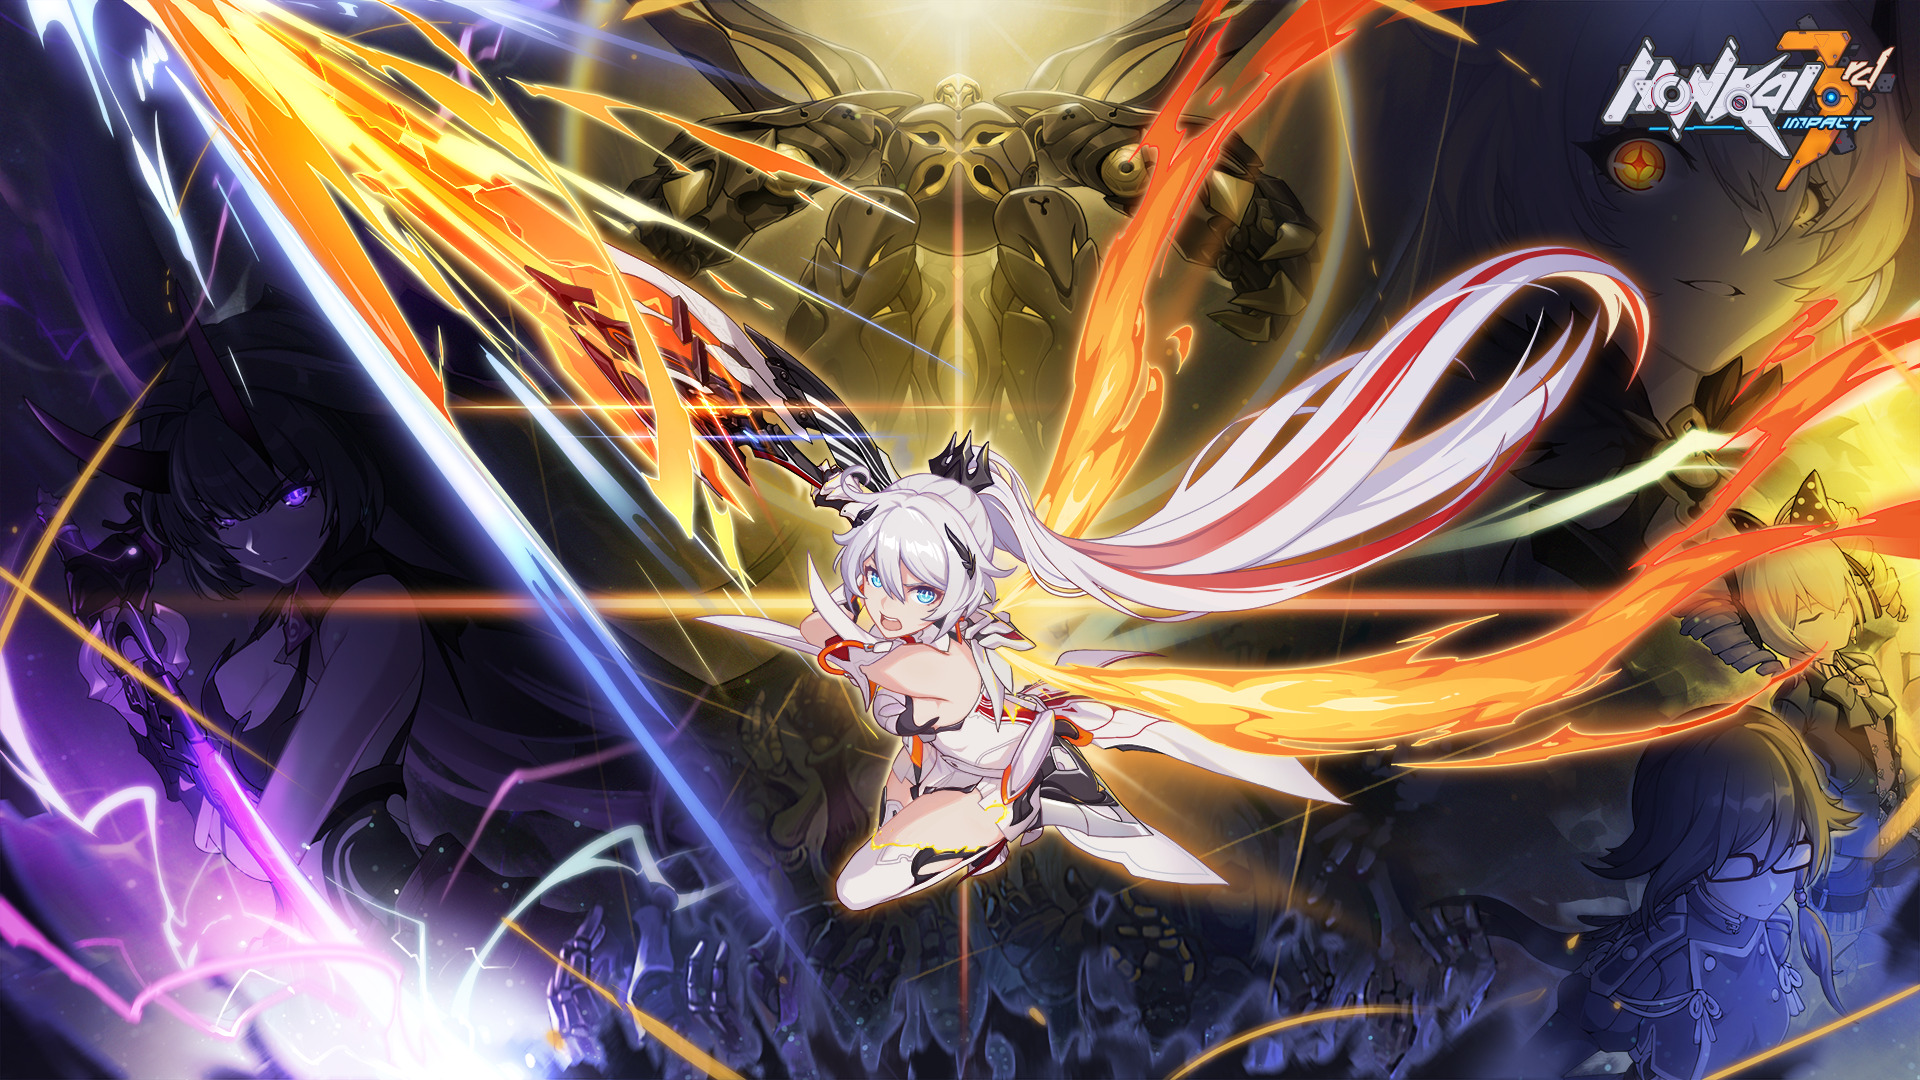 """Honkai Impact 3rd v5.0 """"Inherit The Flame"""" Update Launches On The 12th Of August 15"""